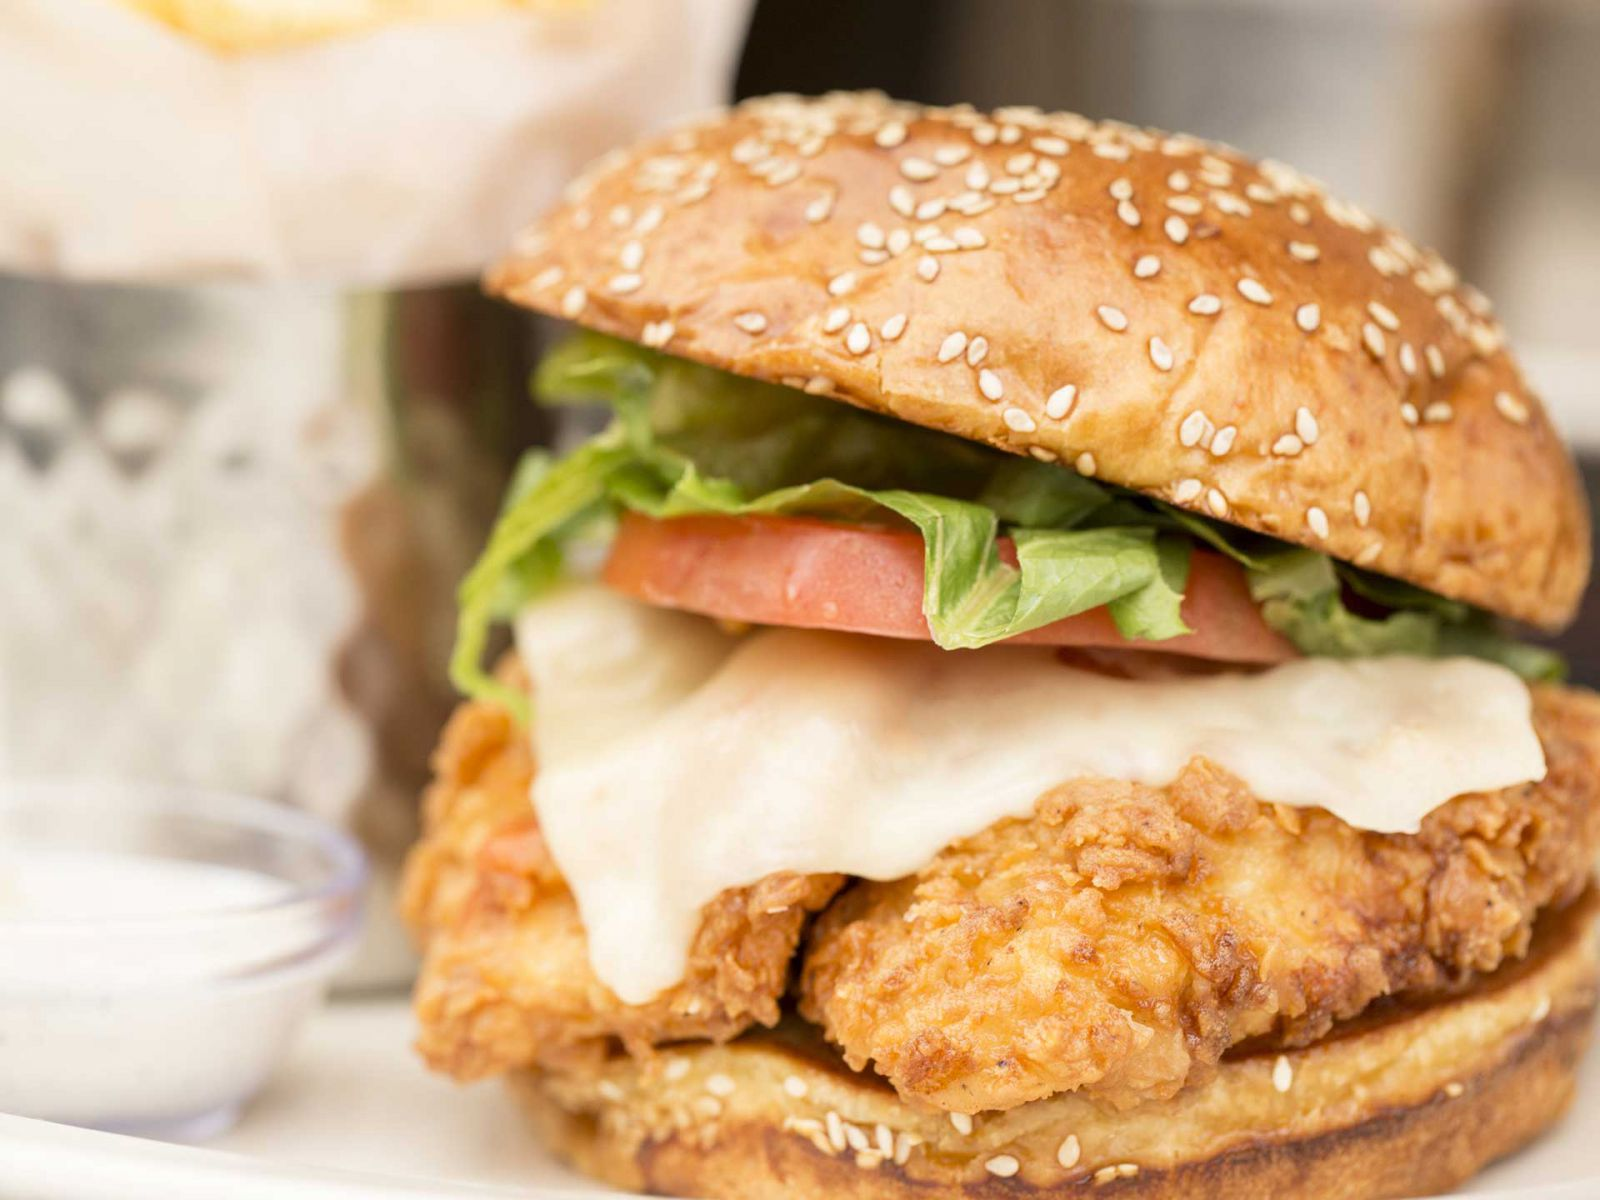 Cheesecake Factory's Southern Fried Chicken Sliders Copycat Recipe forecasting